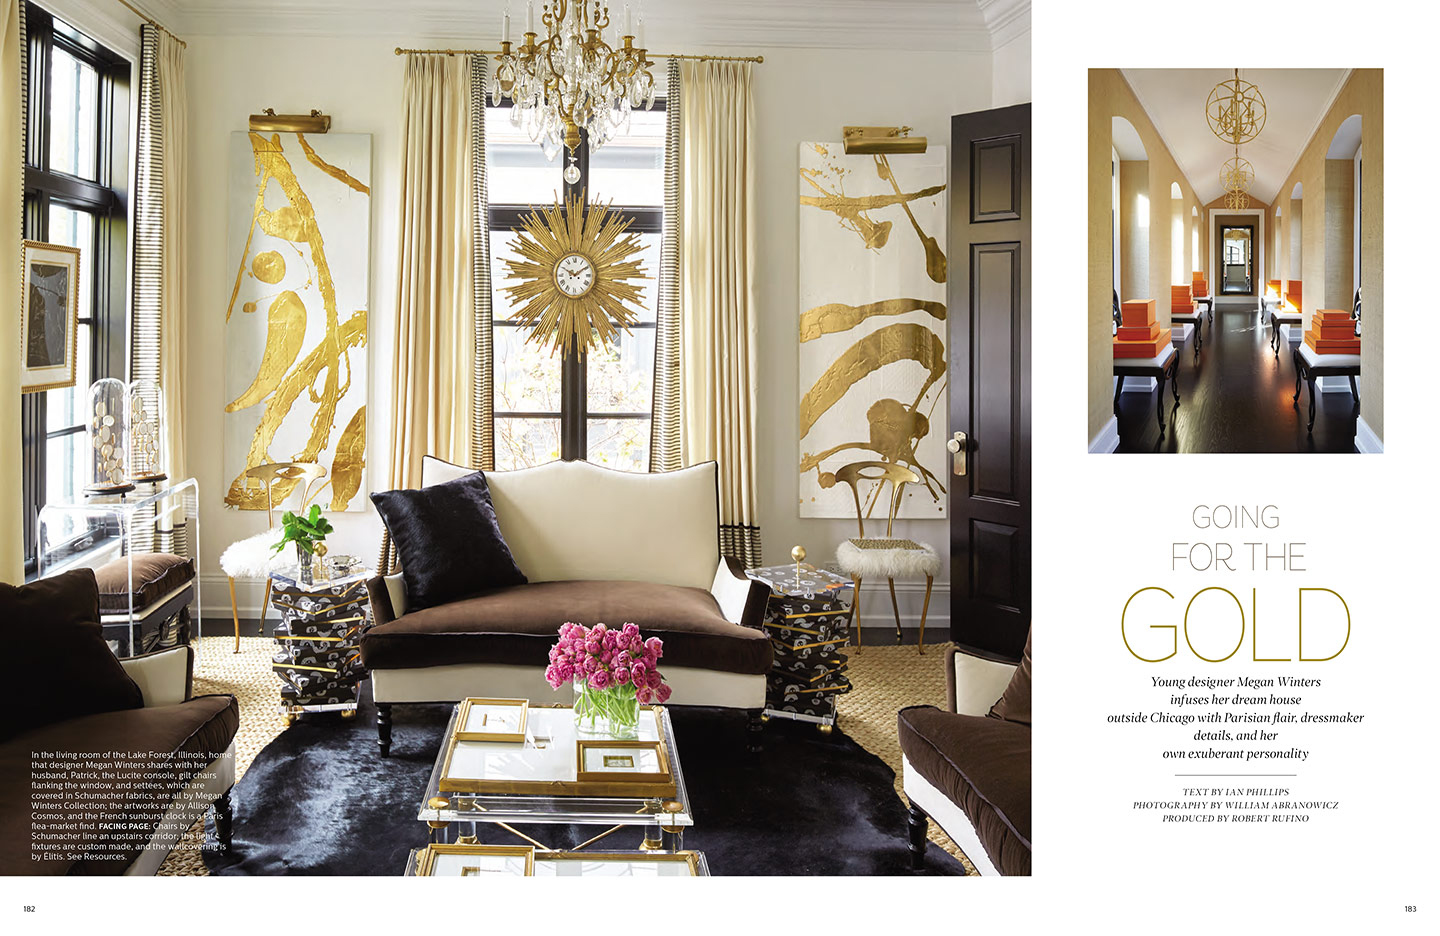 Elle Decor Gold and White abstract paintings by Allison Cosmos for Megan Winters